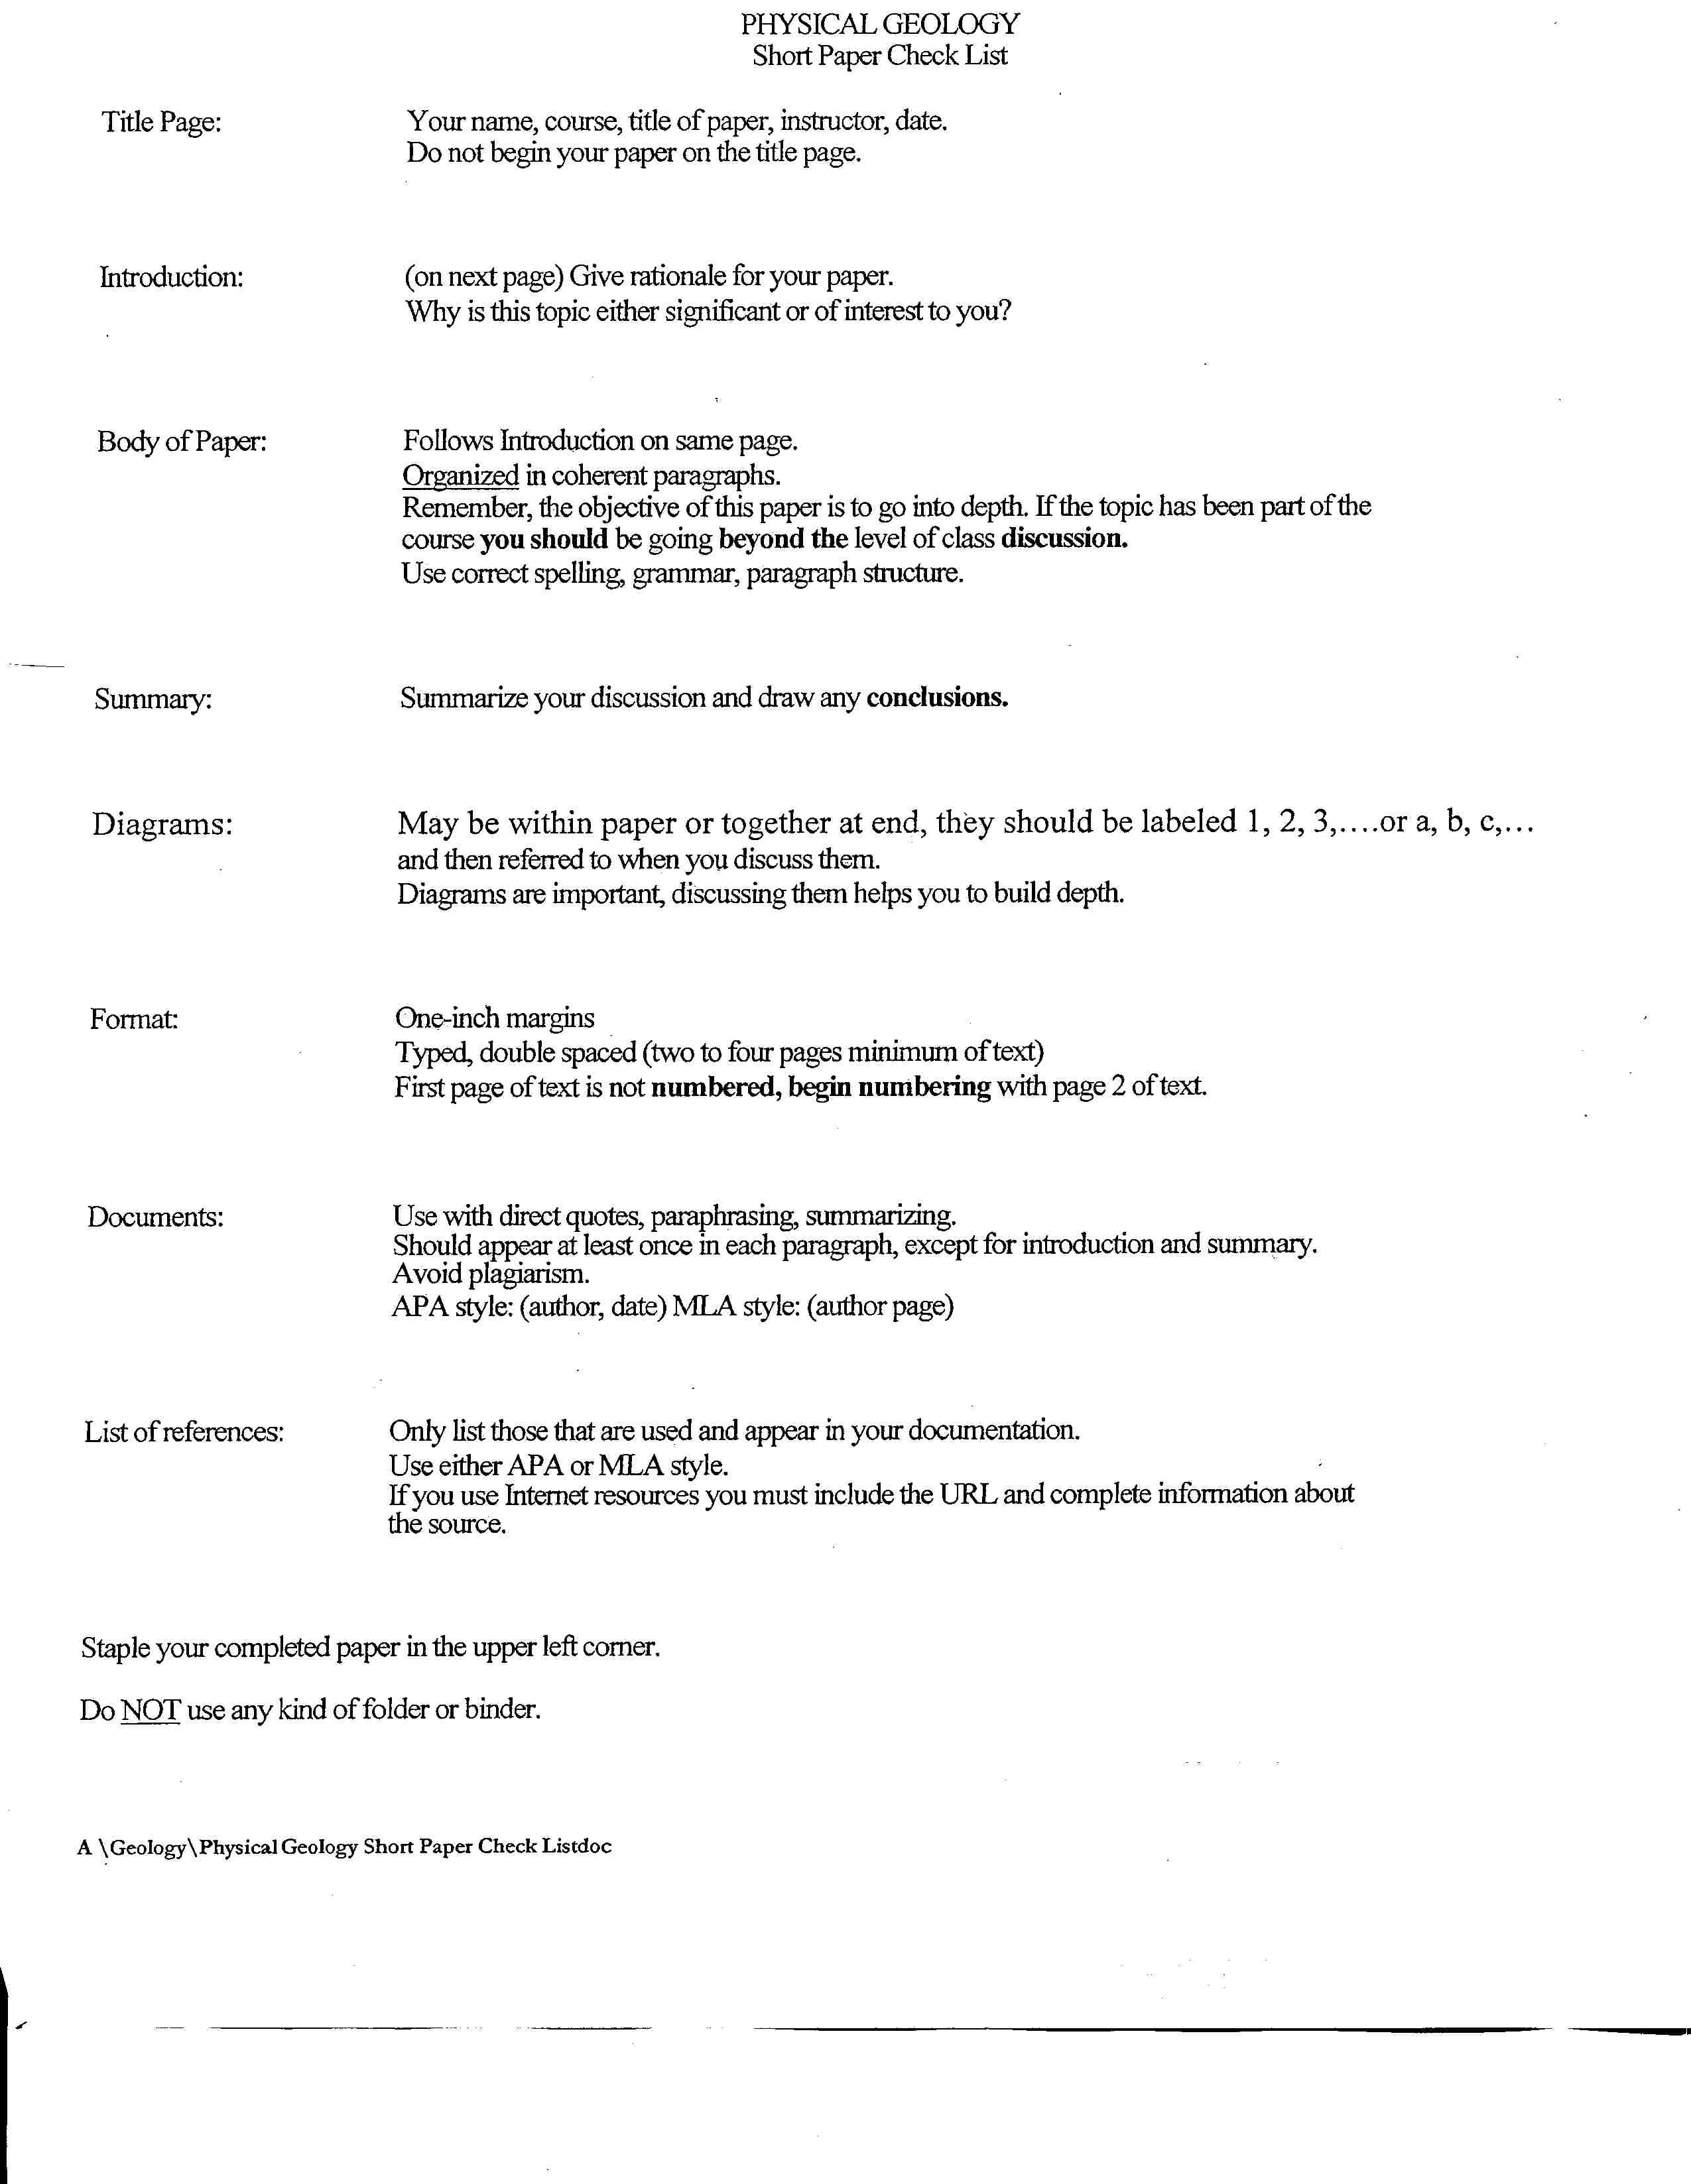 021 Research Paper Example Of Introduction Short Checklist Wonderful A About Bullying Psychology Scientific Full